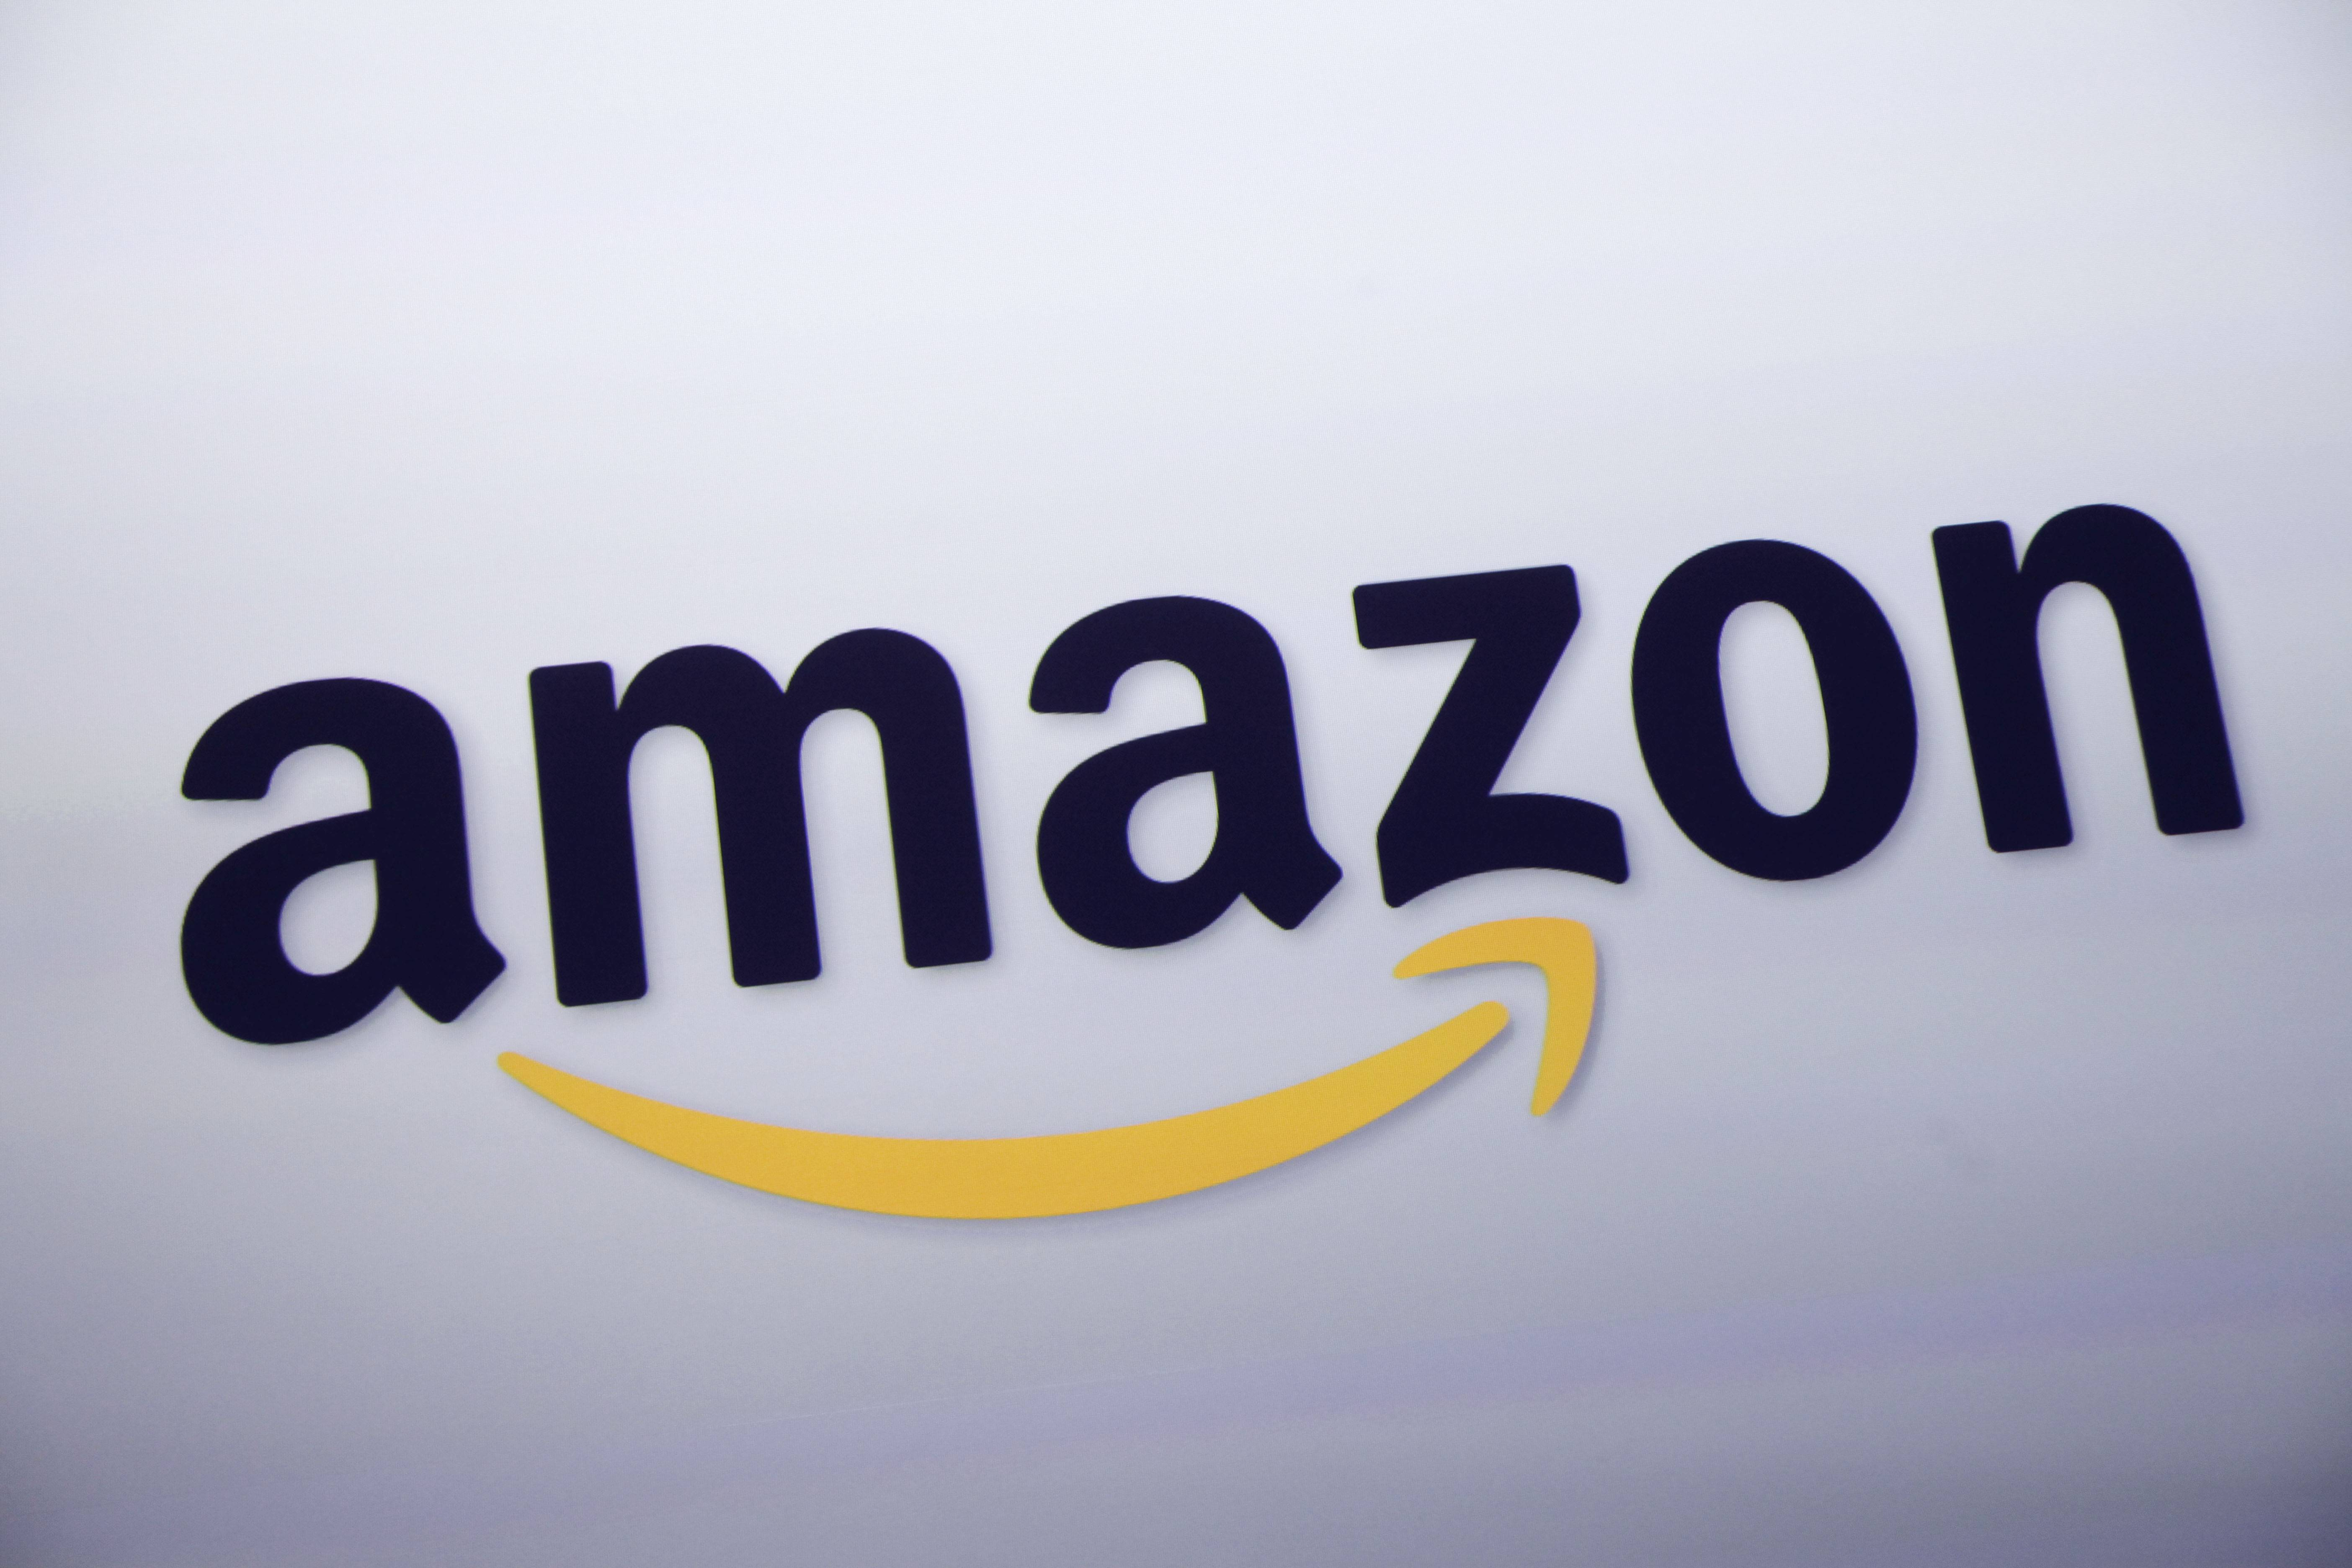 Amazon.com Inc. is developing a voice-activated wearable device that can recognize human emotions.